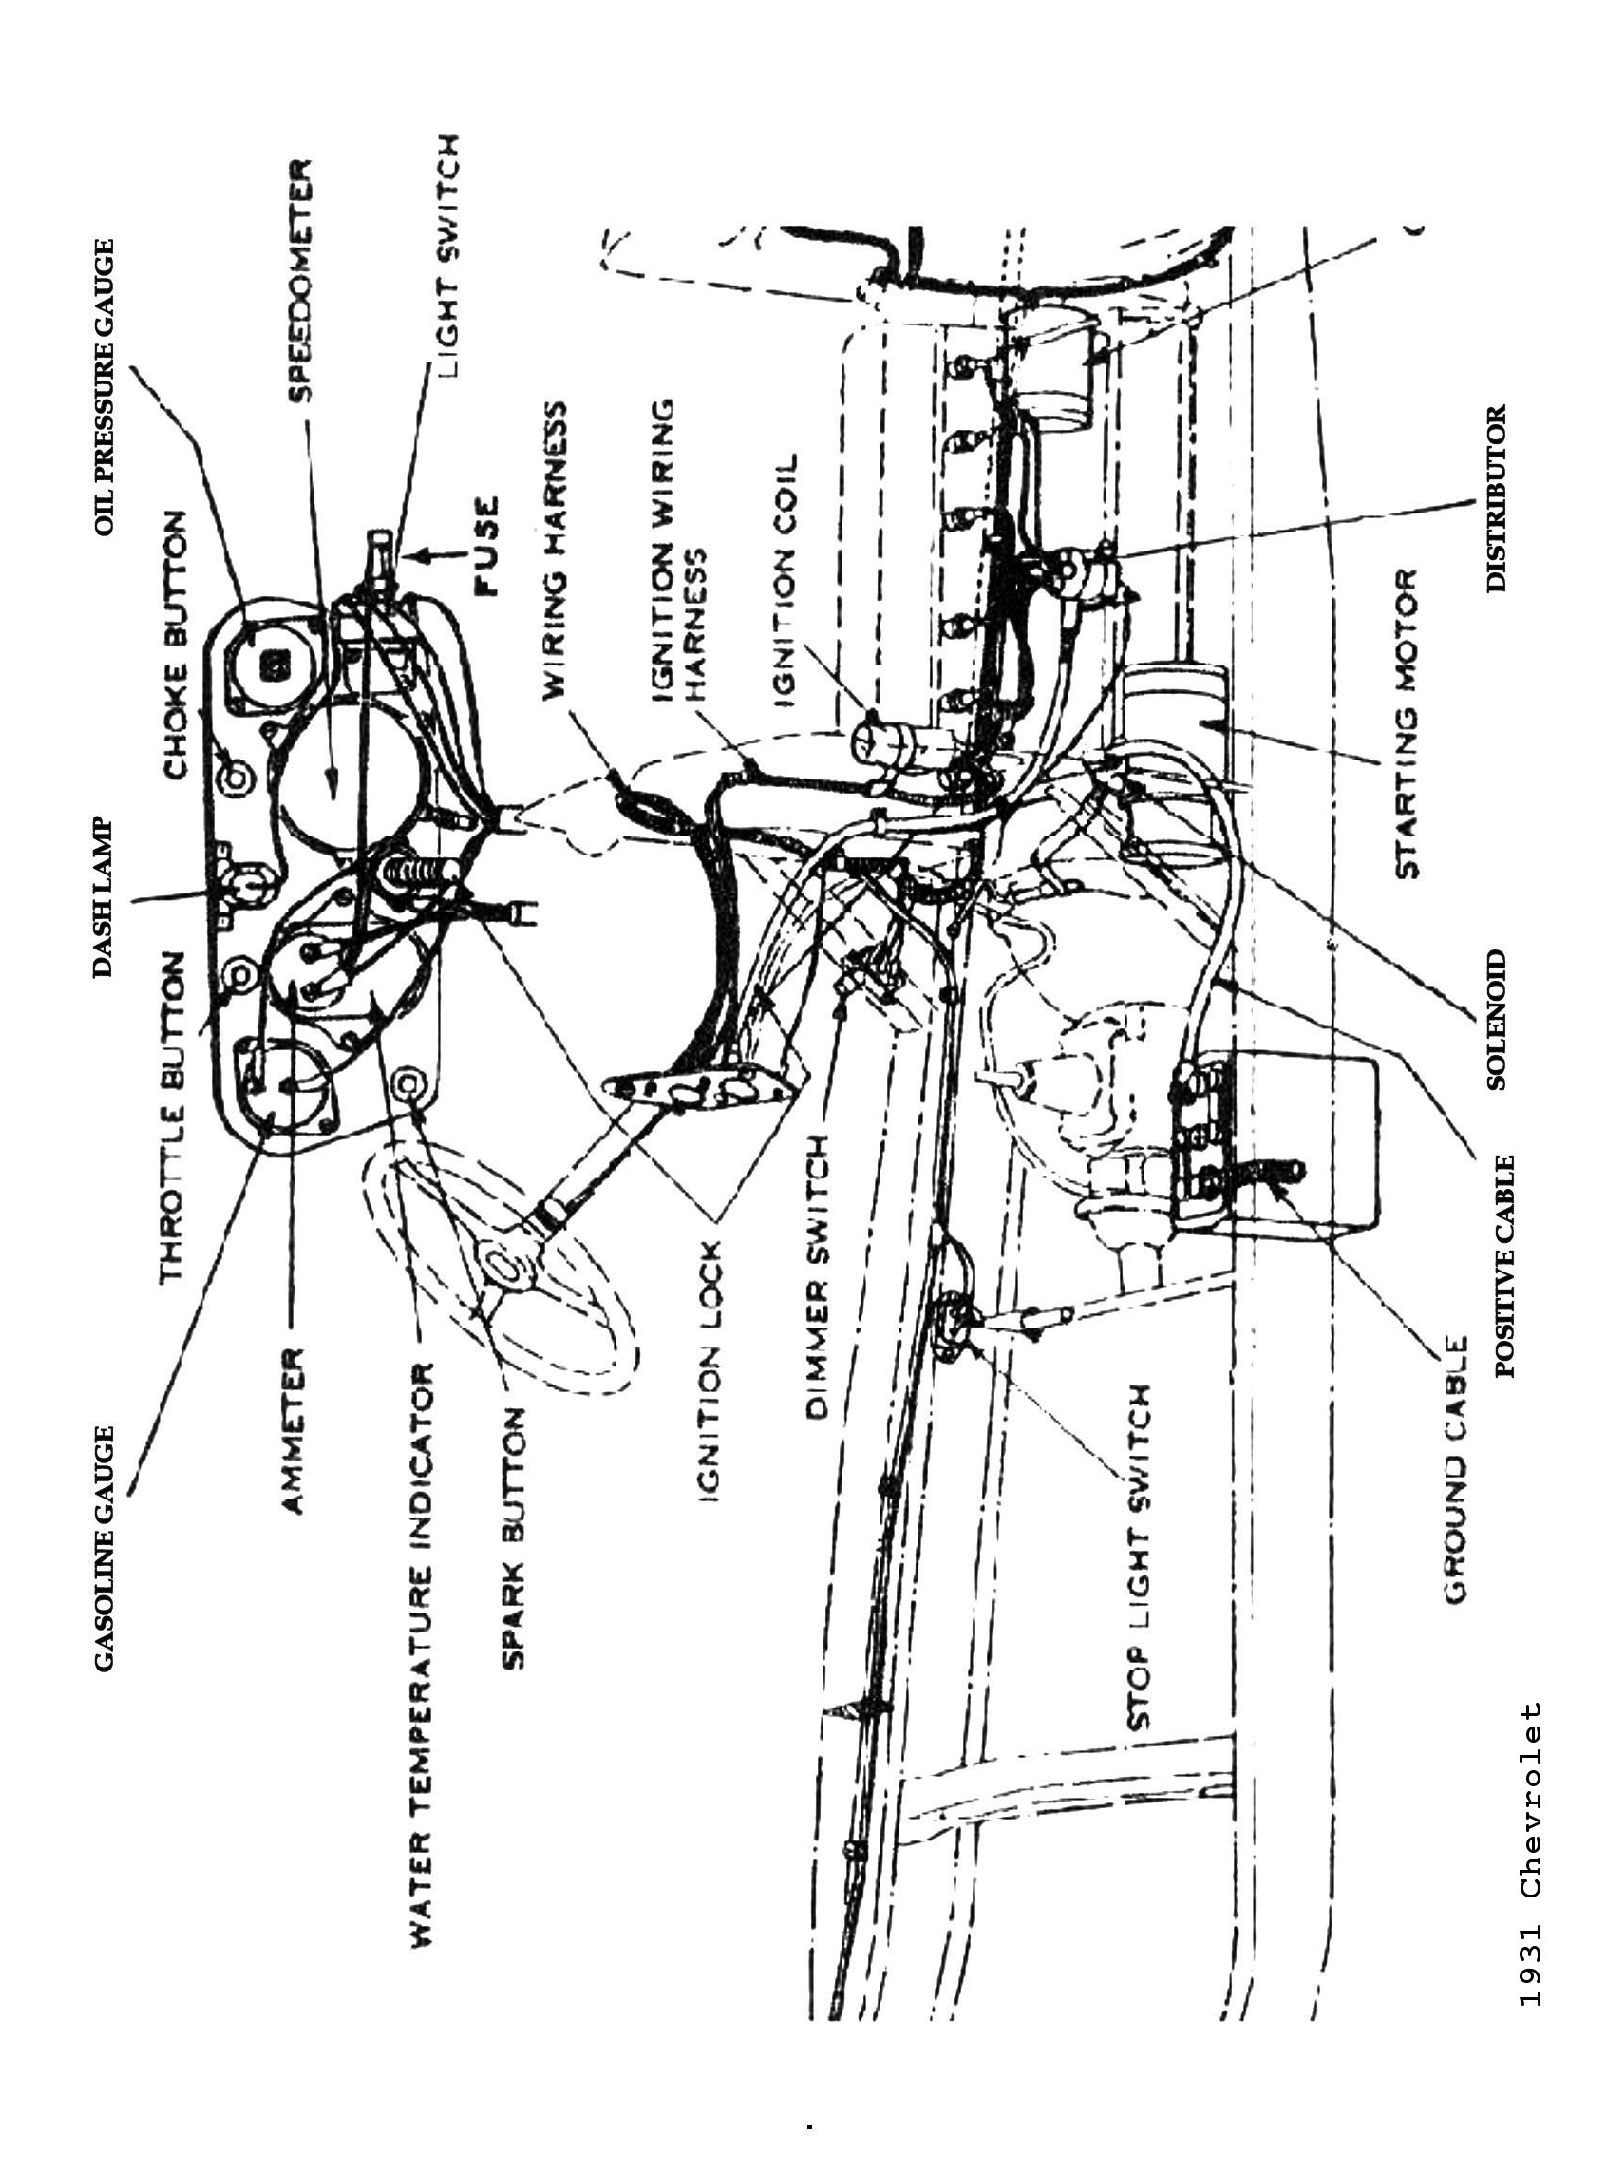 31harness chevy wiring diagrams Ford Model T at bayanpartner.co